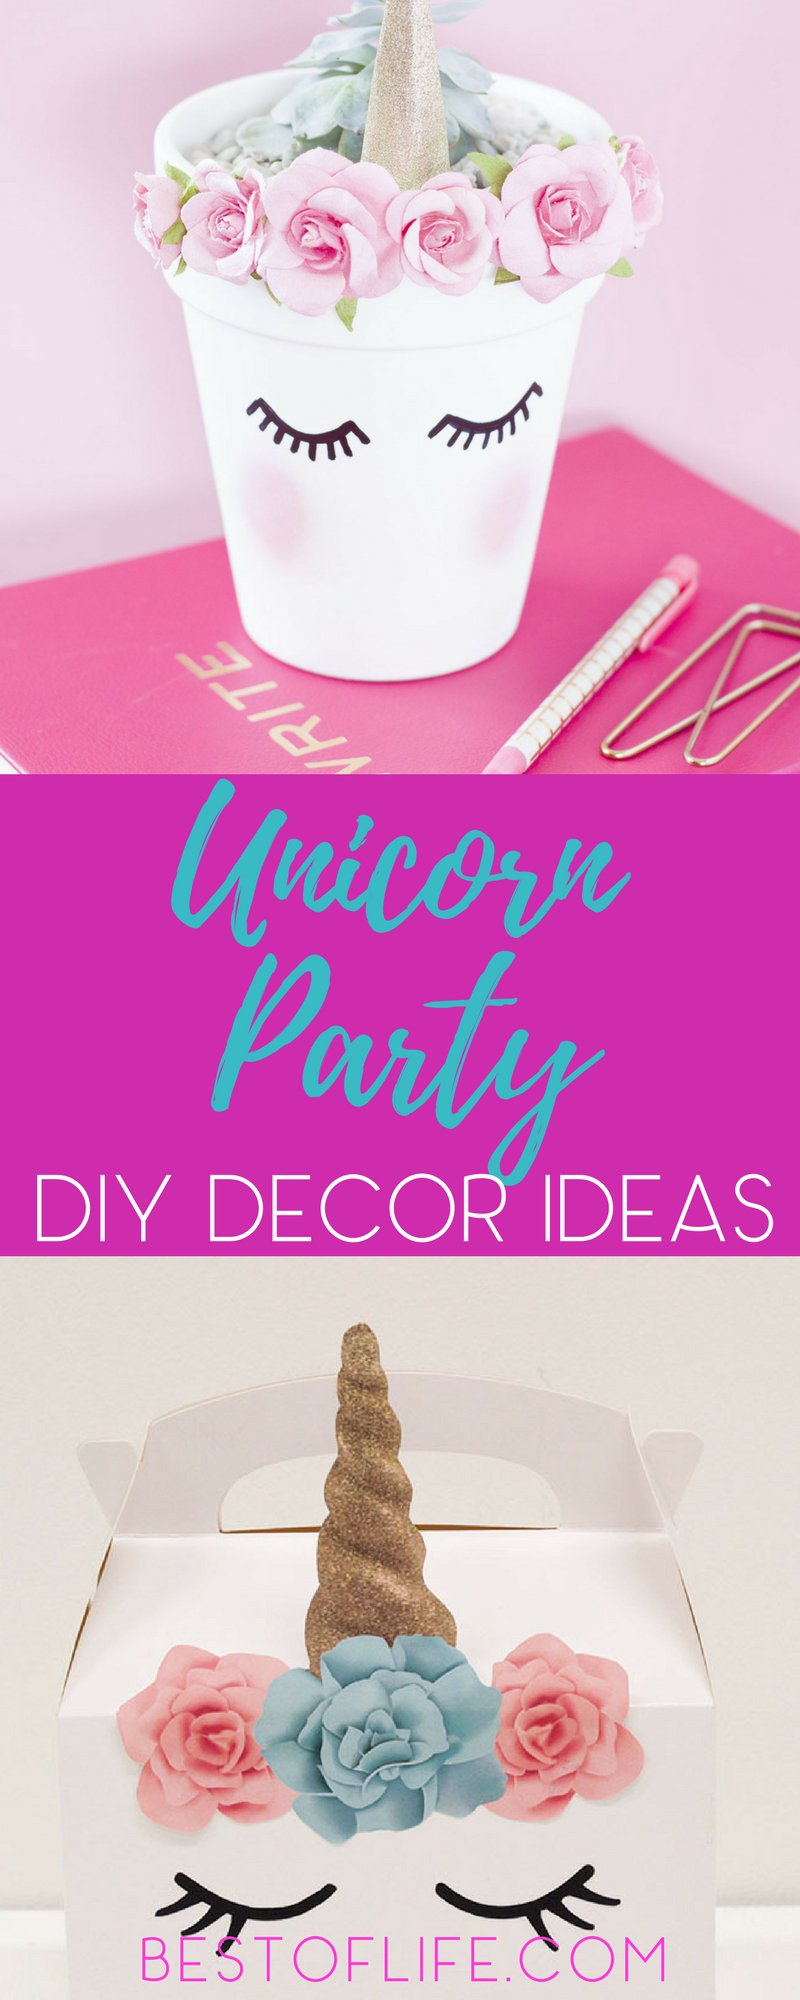 15 Unicorn Birthday Party Decorations to Make a Party